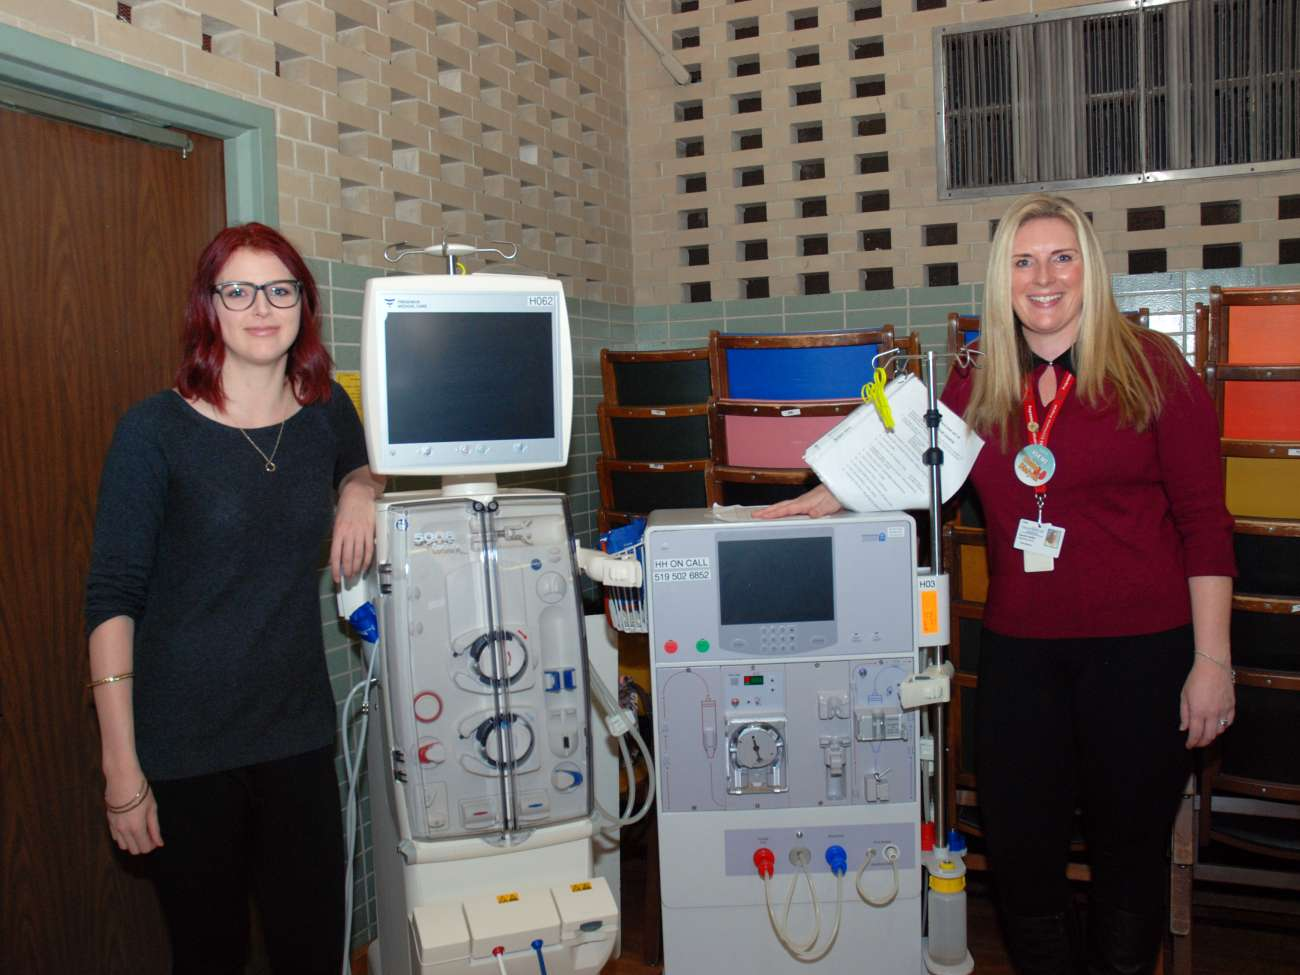 Event organizers Kate McCabe and Sandra Nuttin with home dialysis machines